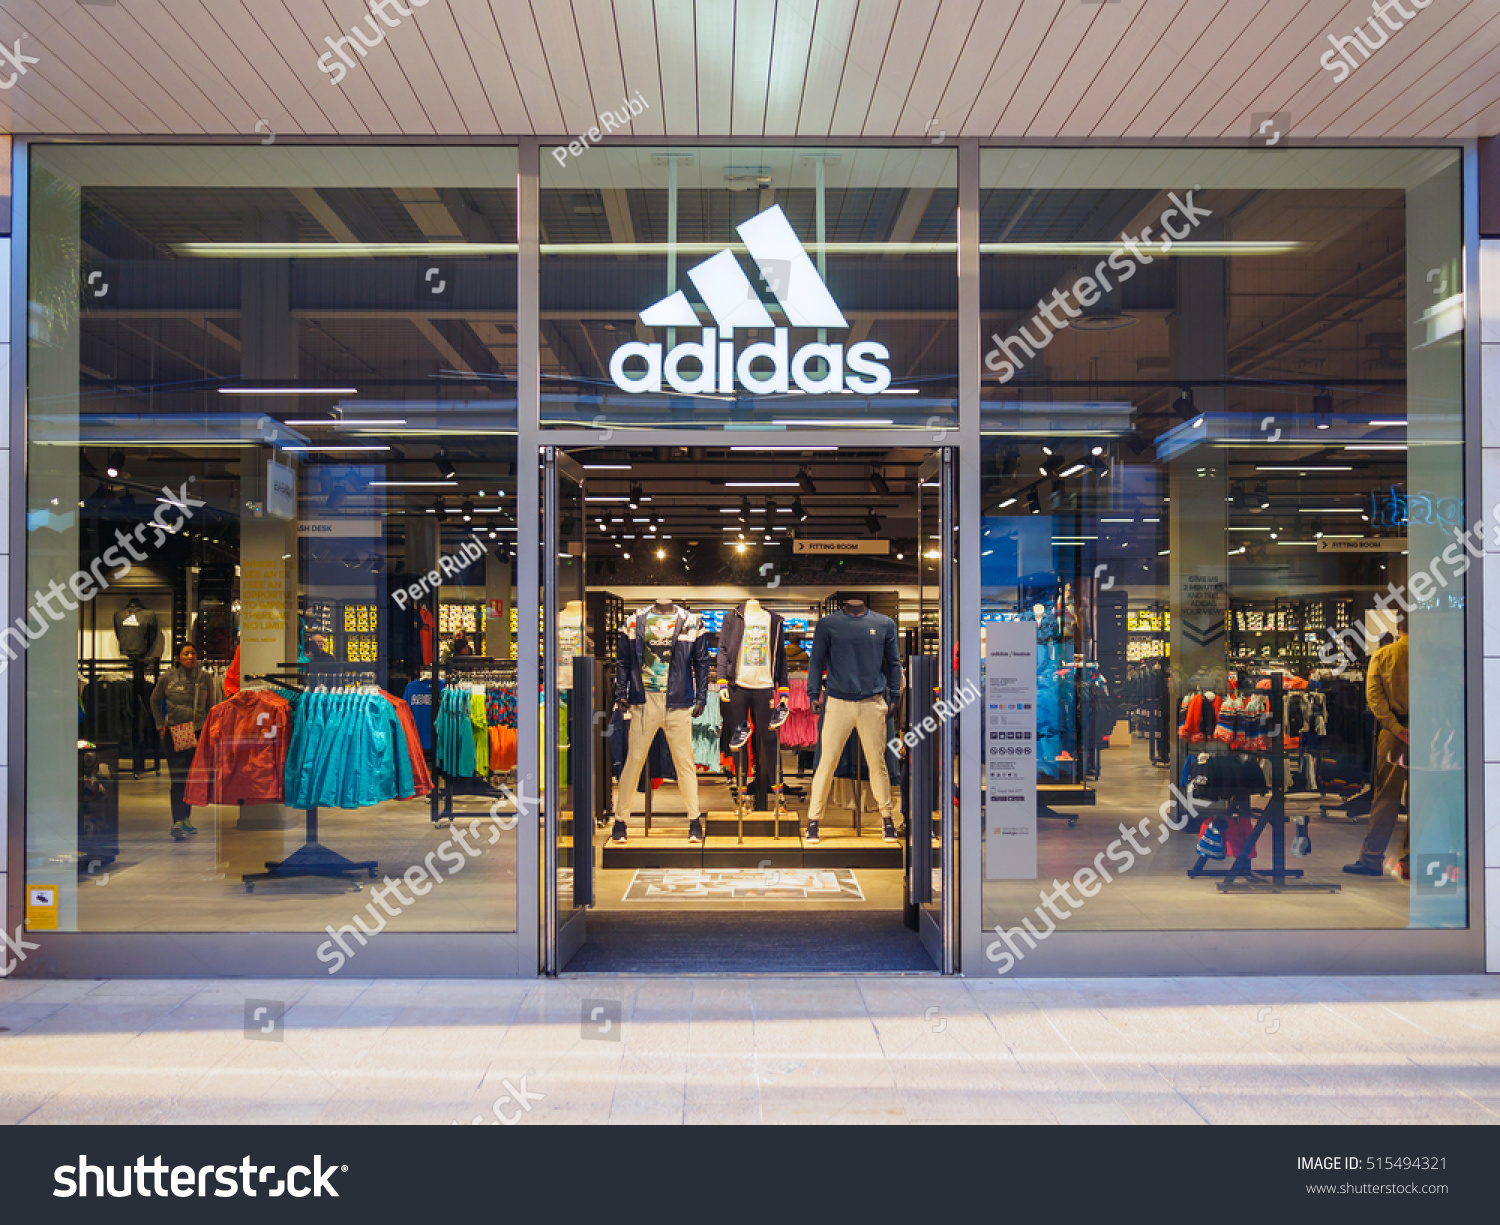 temblor Matar Leer  adidas style outlet - 55% remise - www.muminlerotomotiv.com.tr